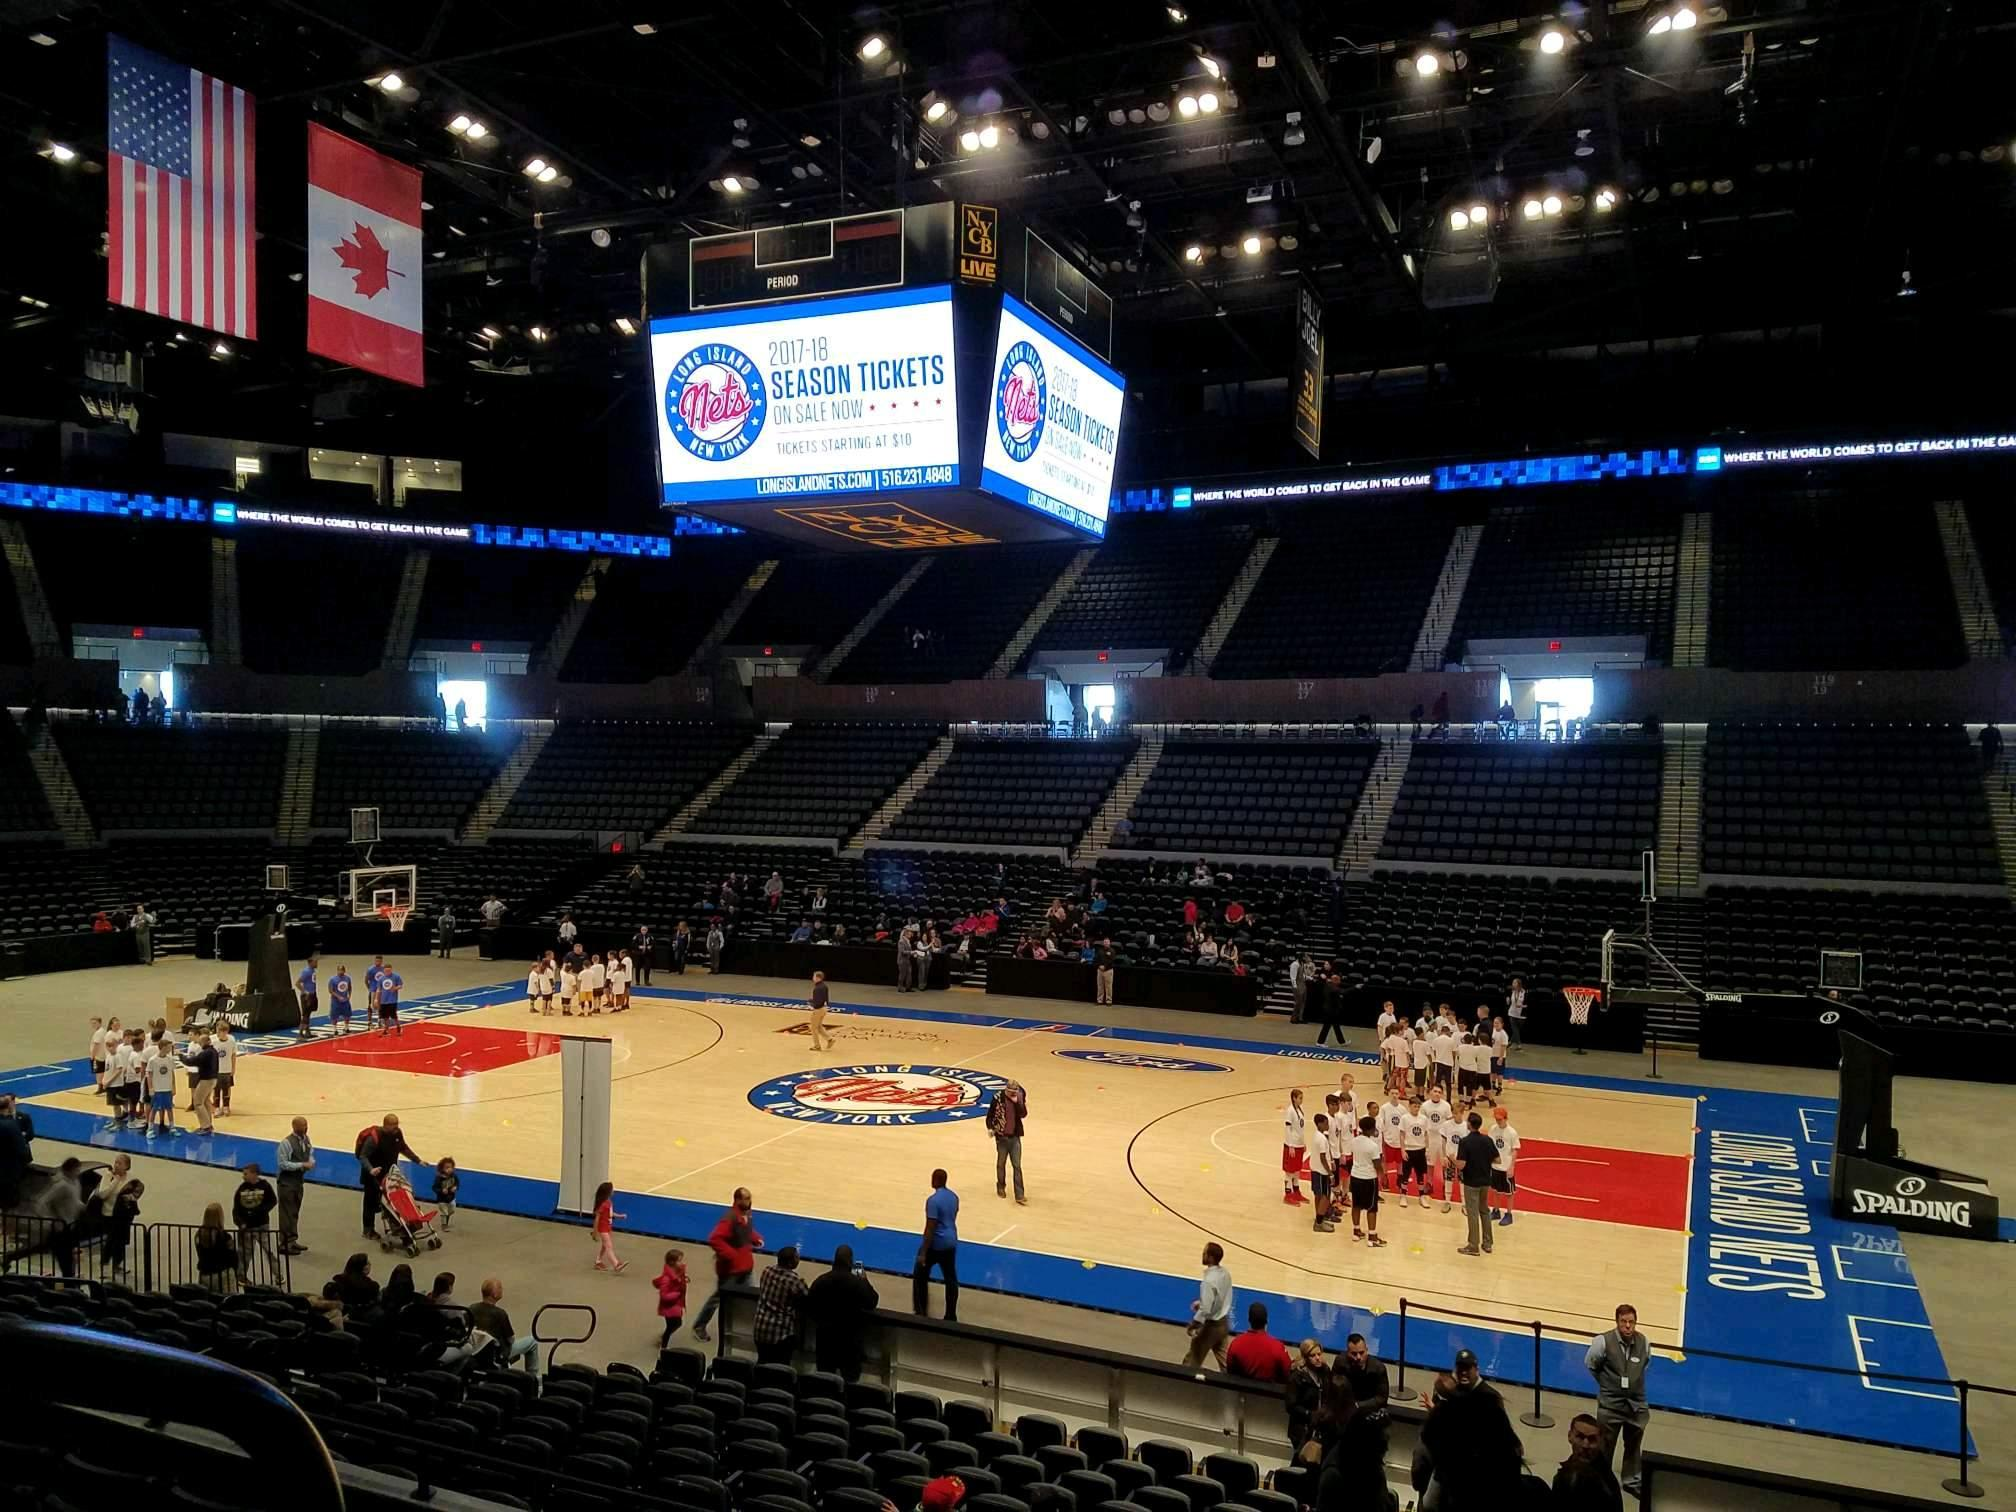 Nassau Veterans Memorial Coliseum Section 101 Row 6 Seat 14